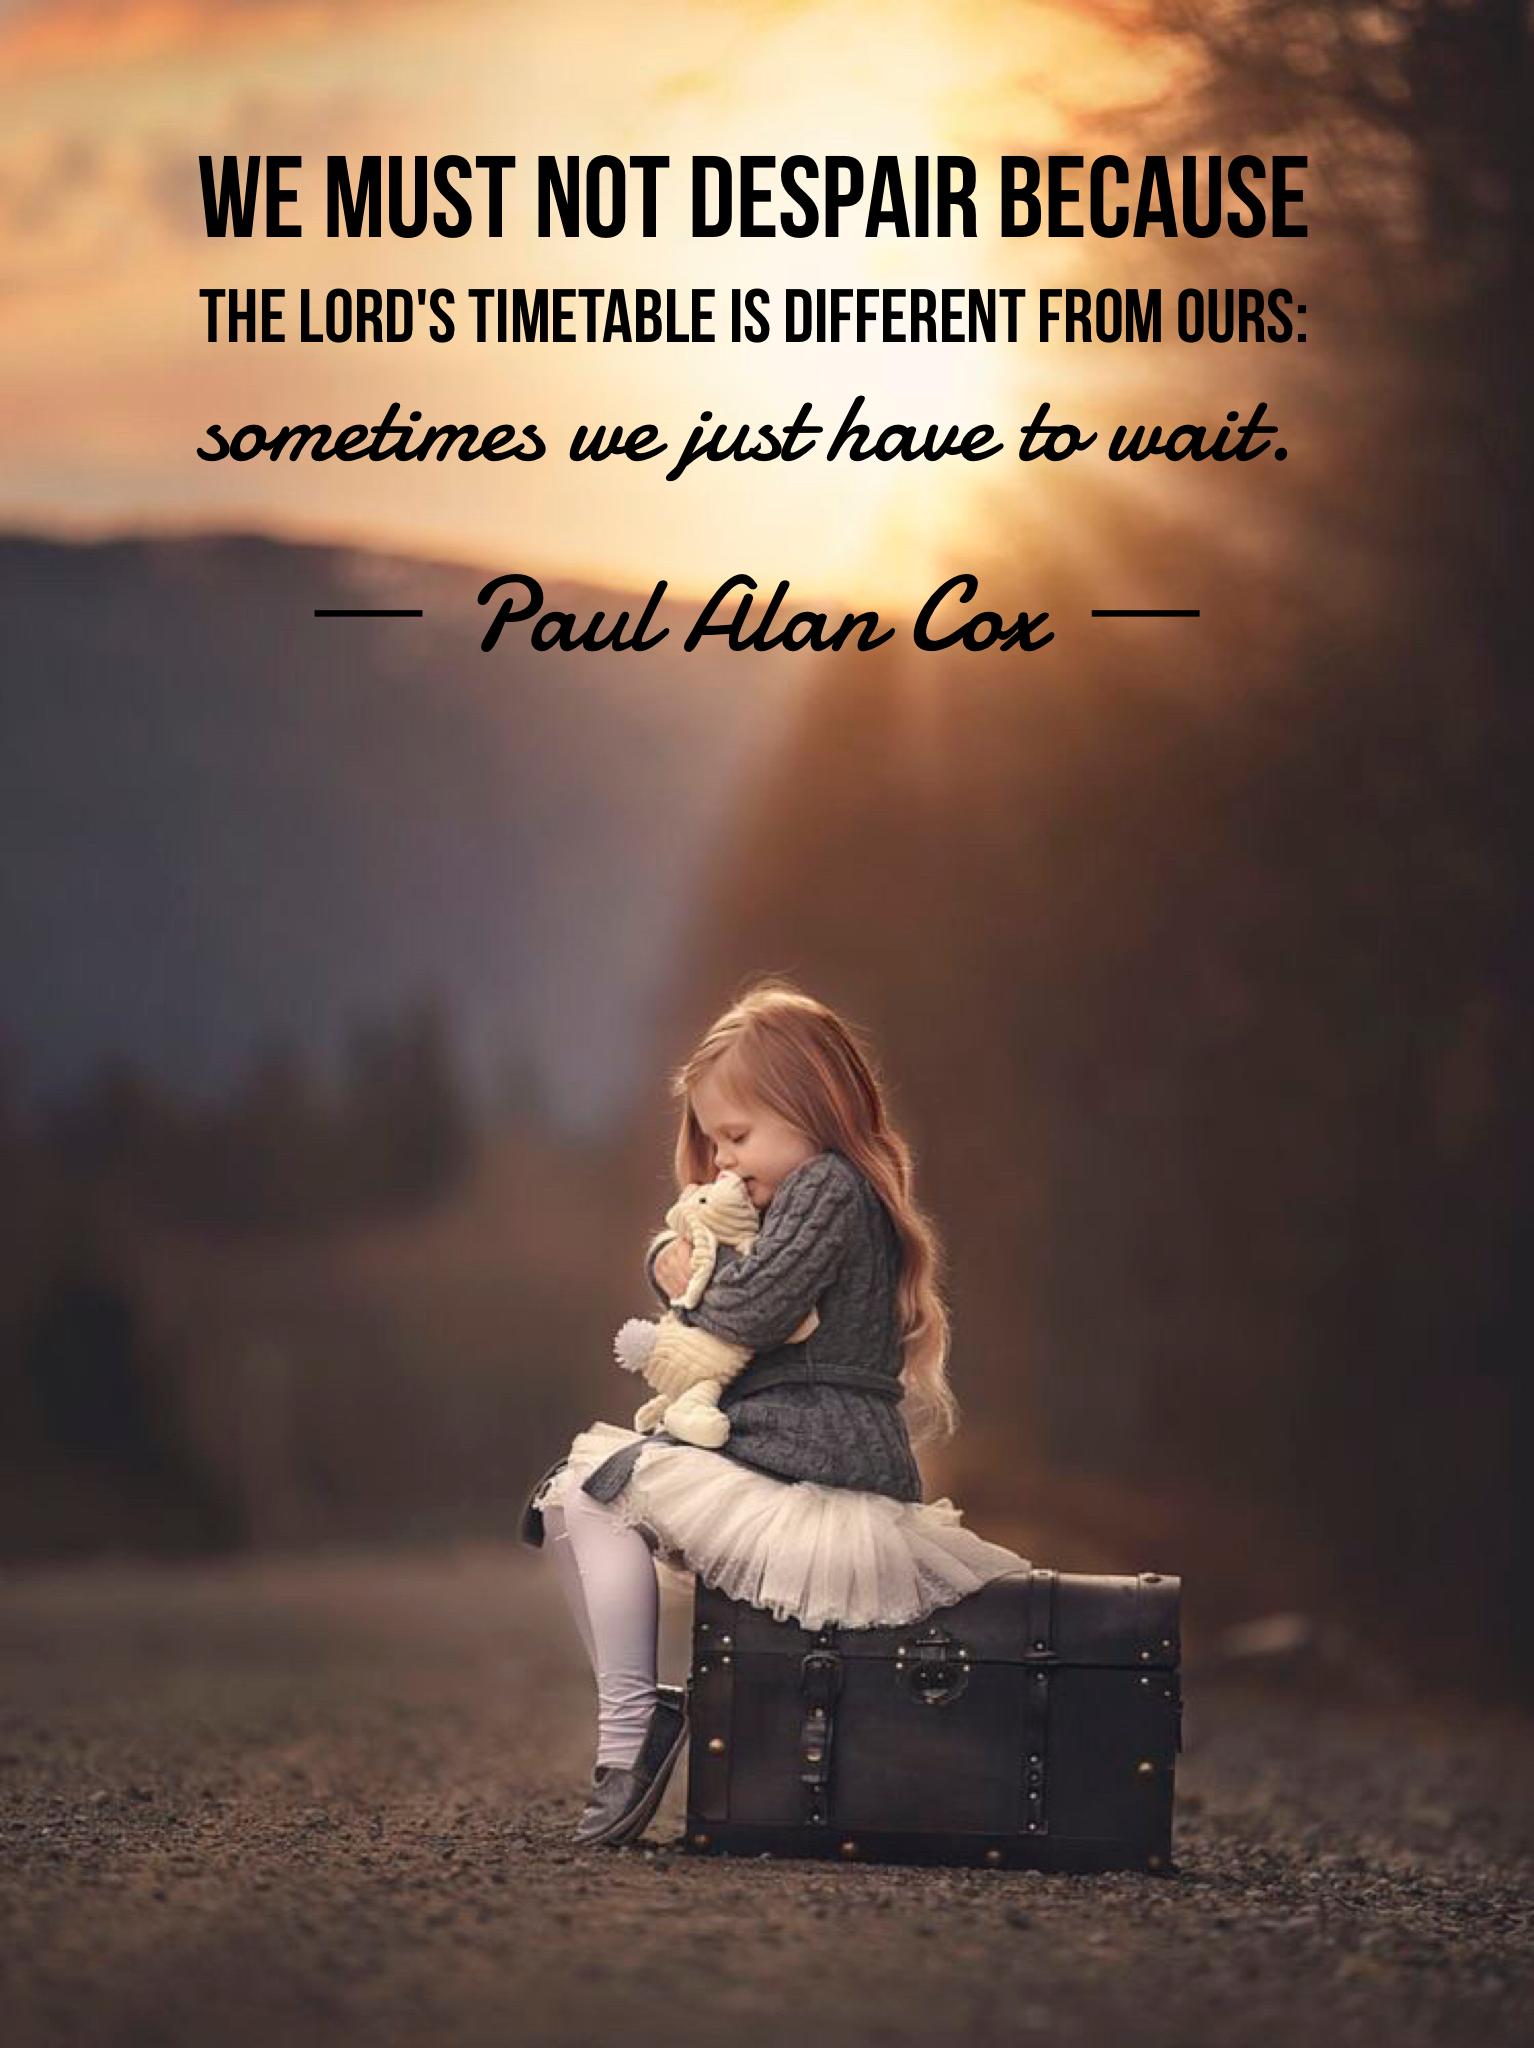 #ldsquotes #byudevo #patience #wait #bestill #longsuffering #timing #lds We must not despair because the Lord's timetable is different from ours: sometimes we just have to wait.